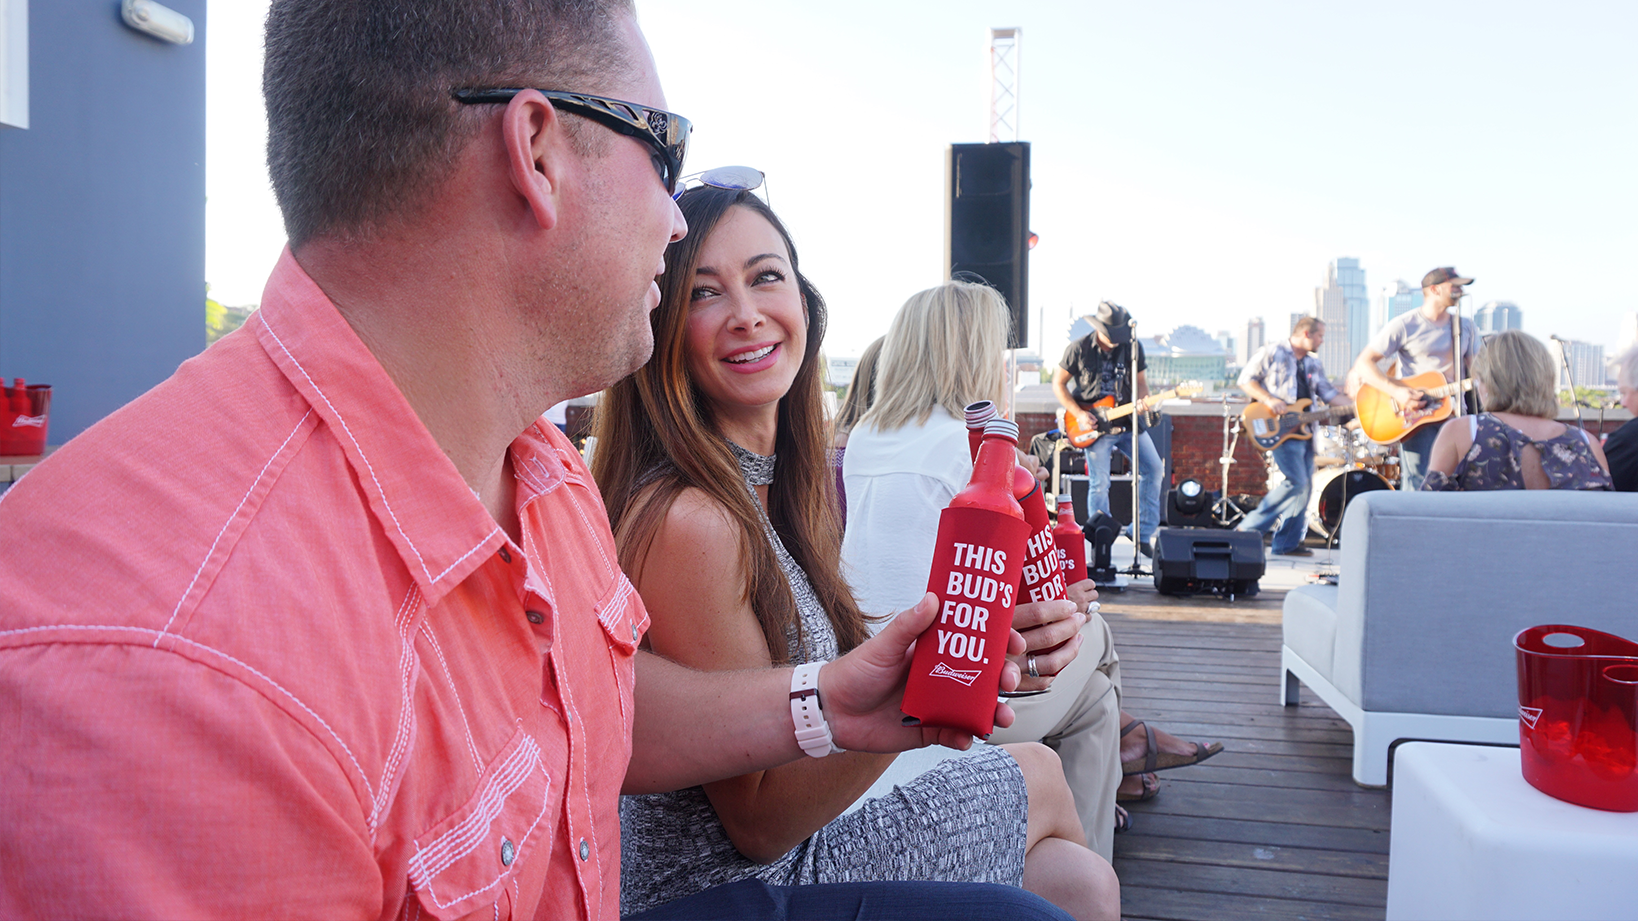 Budweiser – Live music and sampling events